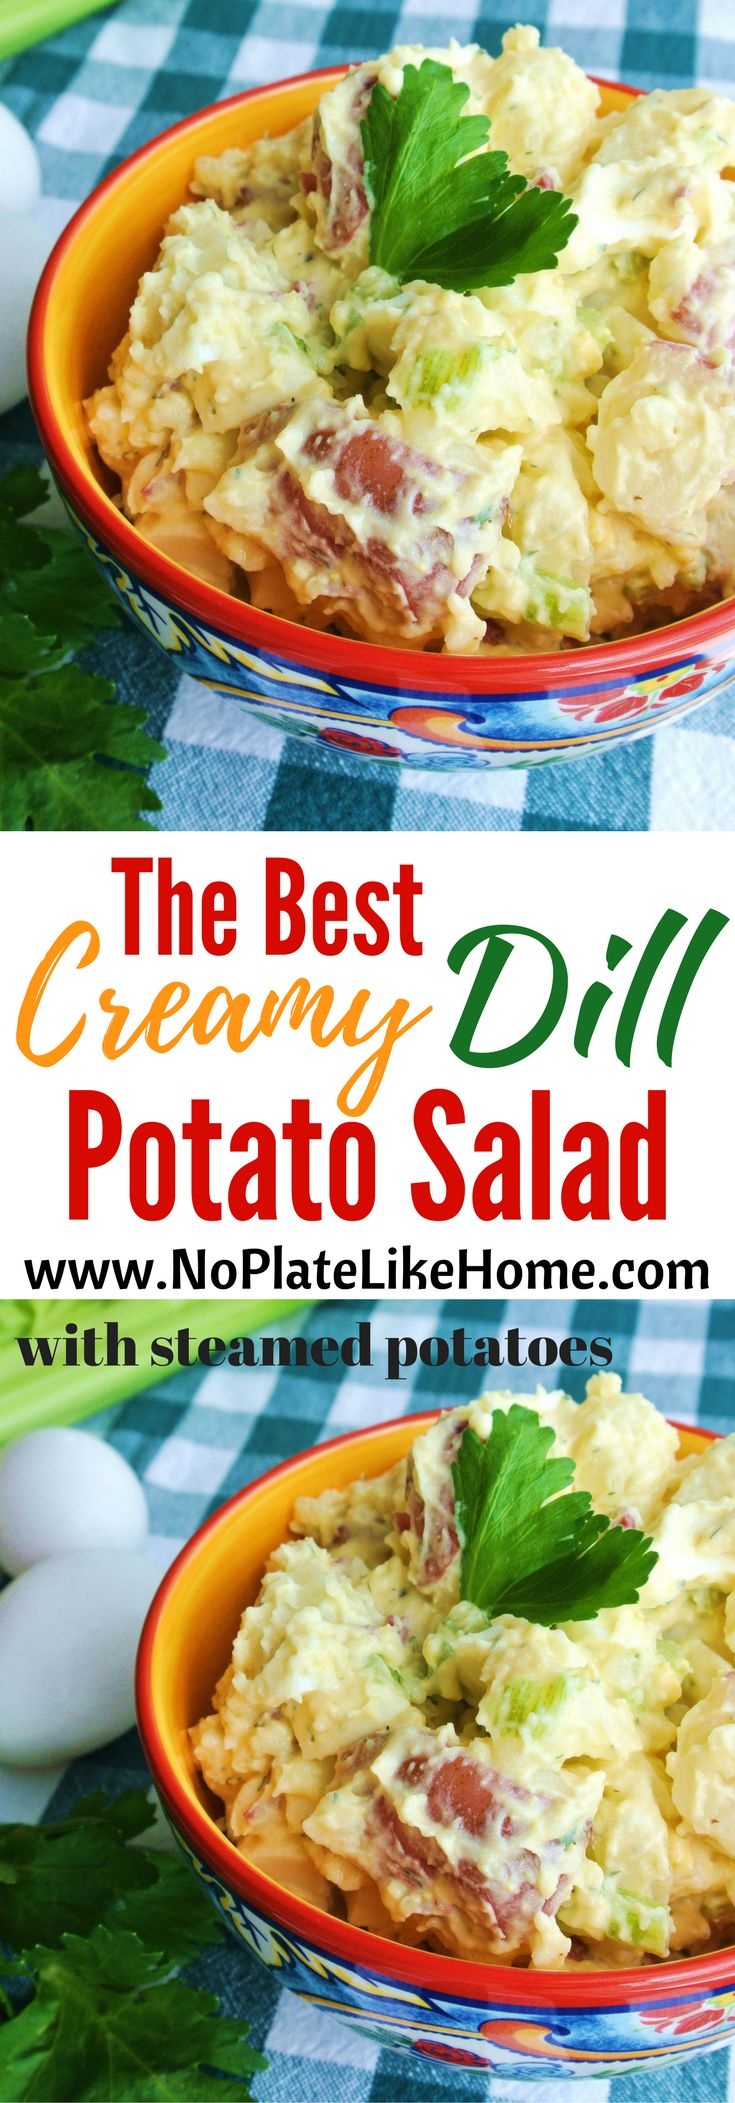 This is the best easy homemade redskin potato salad recipe with eggs! It is made with steamed potatoes for the best silky soft perfectly cooked potatoes. The creamy dill flavor with a hint of mustard is what your family will love. Bring it to BBQs. It will be a hit! Pin for later.